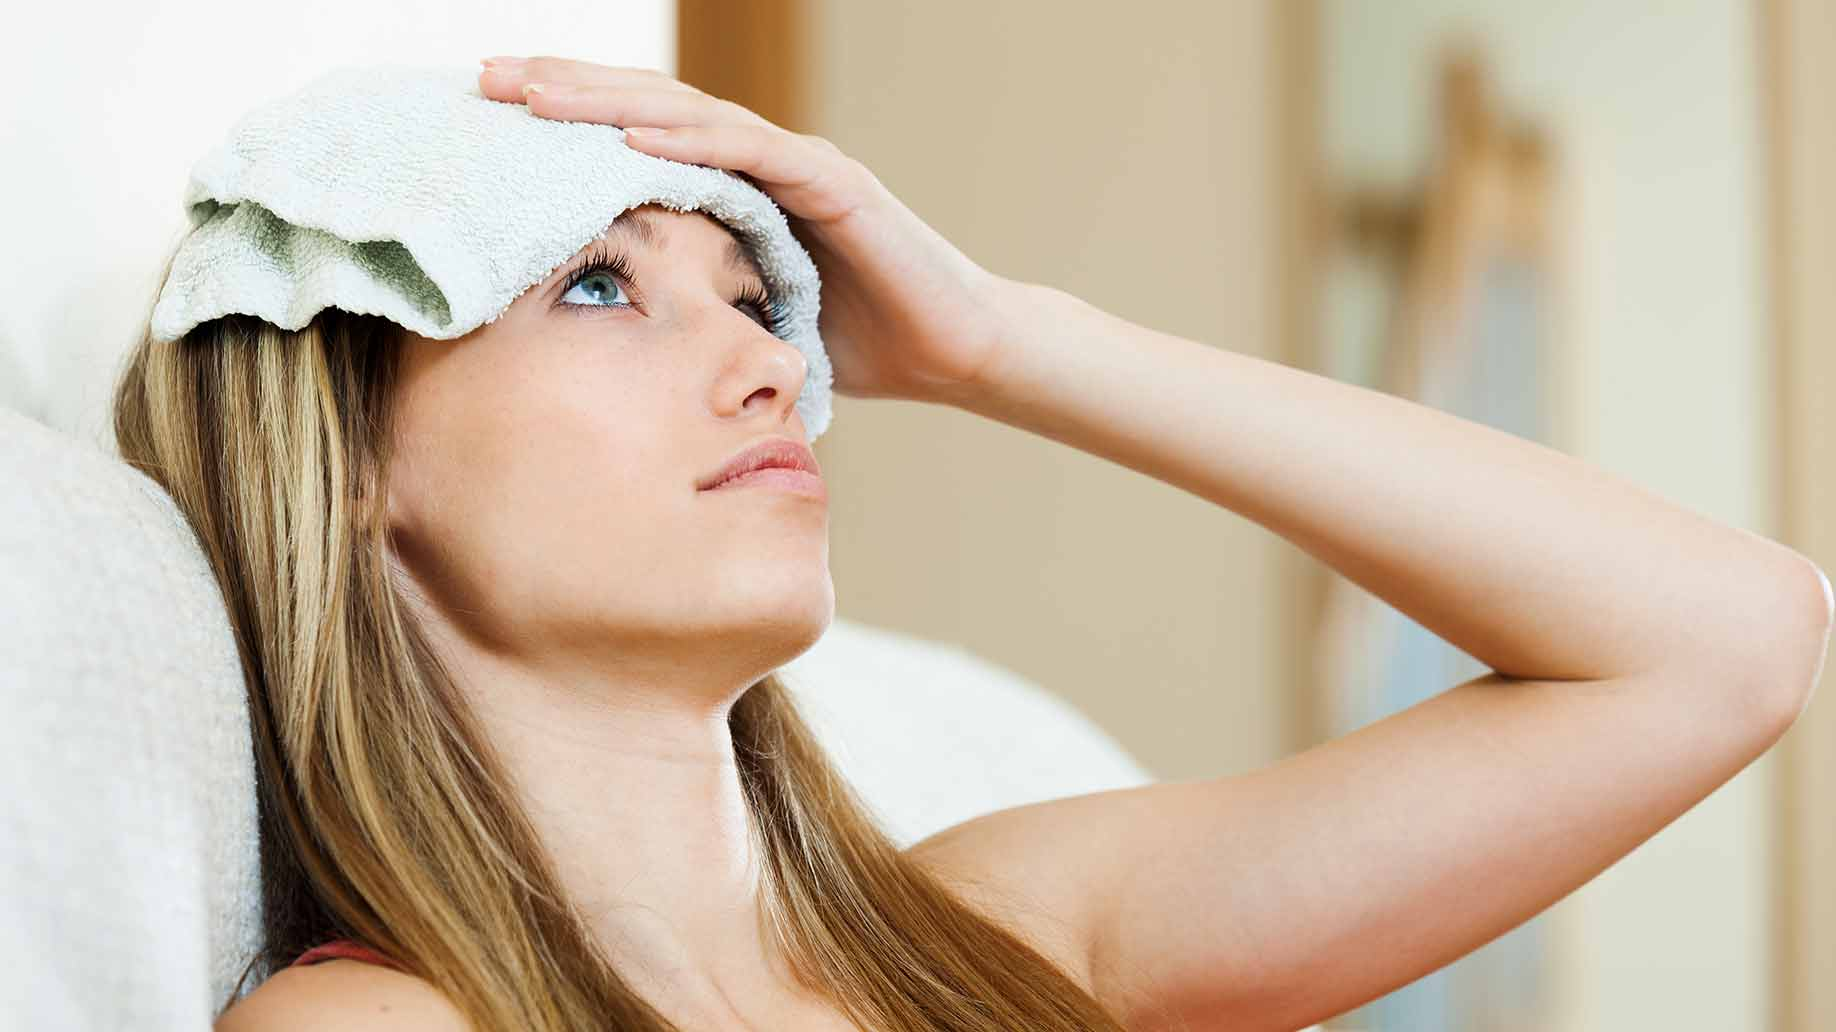 warm hot cold compress wet towel forehead headaches migraines natural remedies